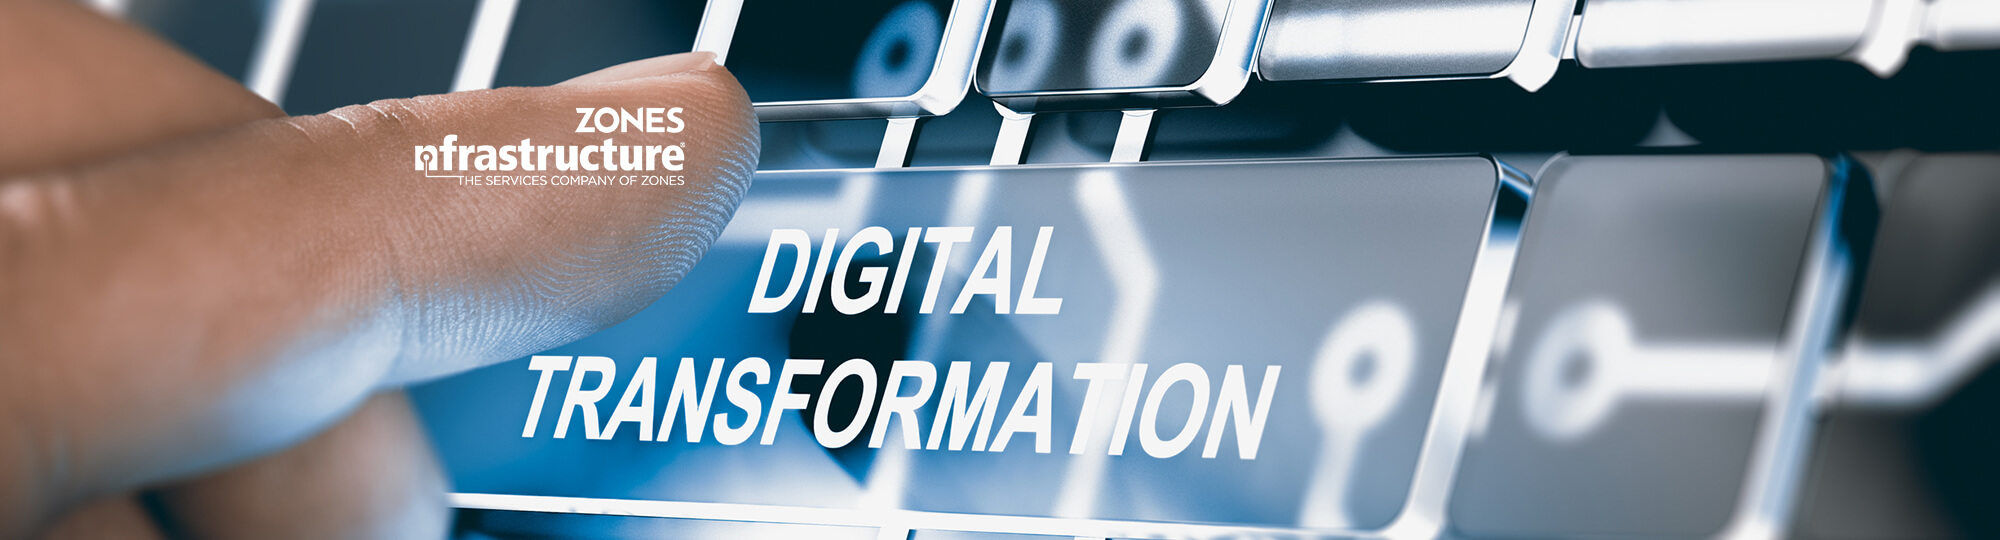 At your service. No matter where you are in your digital transformation, Zones nfrastructure is always ready to serve.